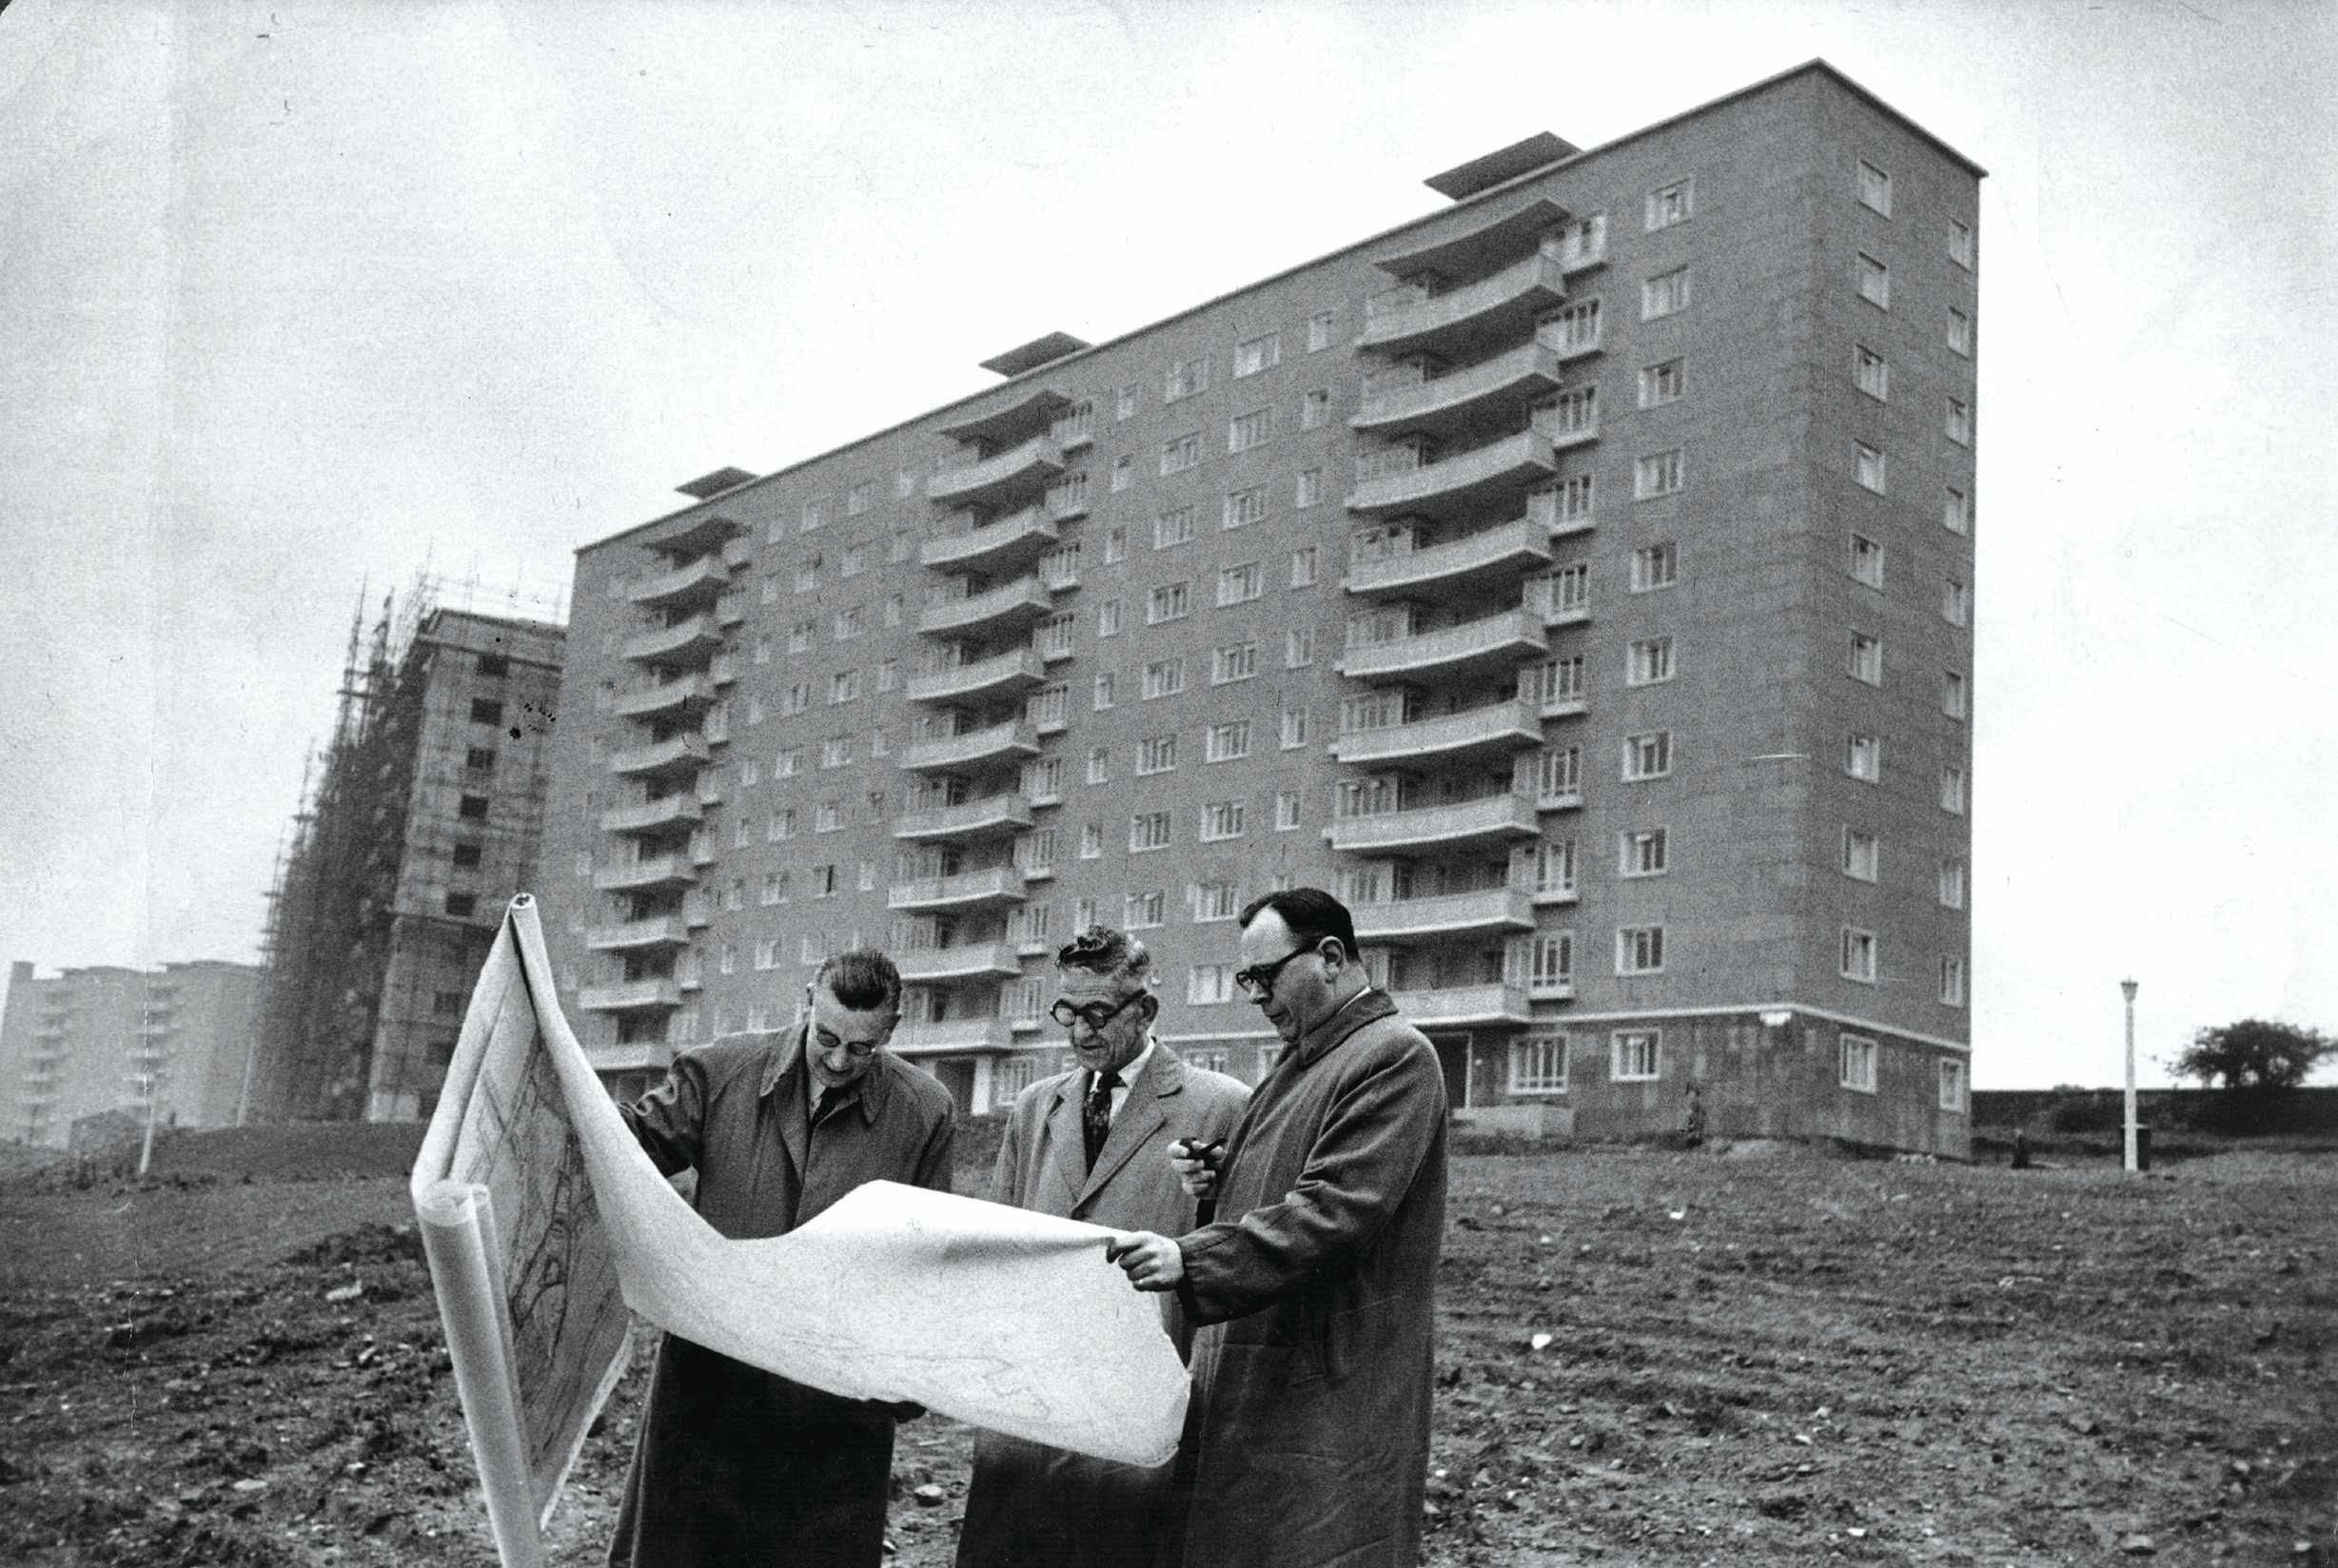 A councillor and architects discuss plans for the Moss Heights development in Glasgow, 1953. Proponents of high-rise flats believed that they would provide